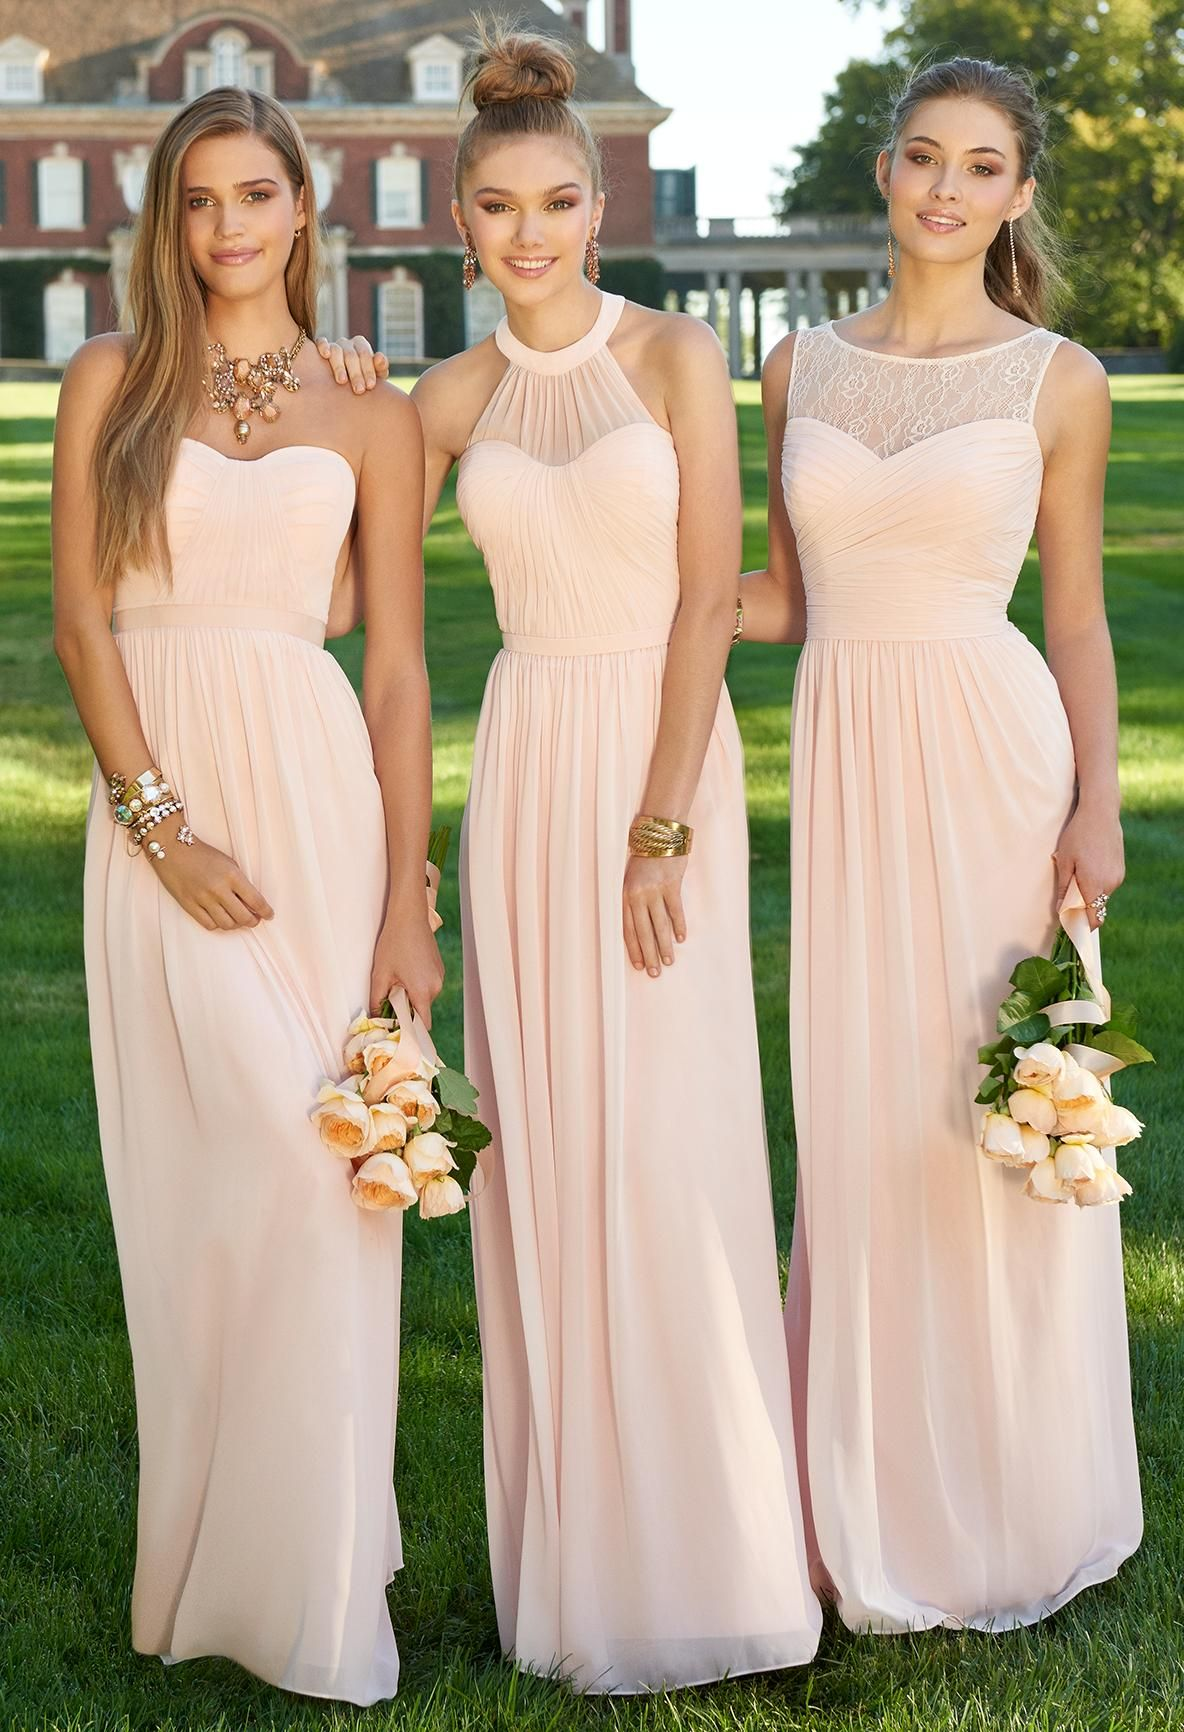 14026506f2c63 Lace Illusion Neckline Dress in 2019 | Boda Civil | Bridesmaid ...